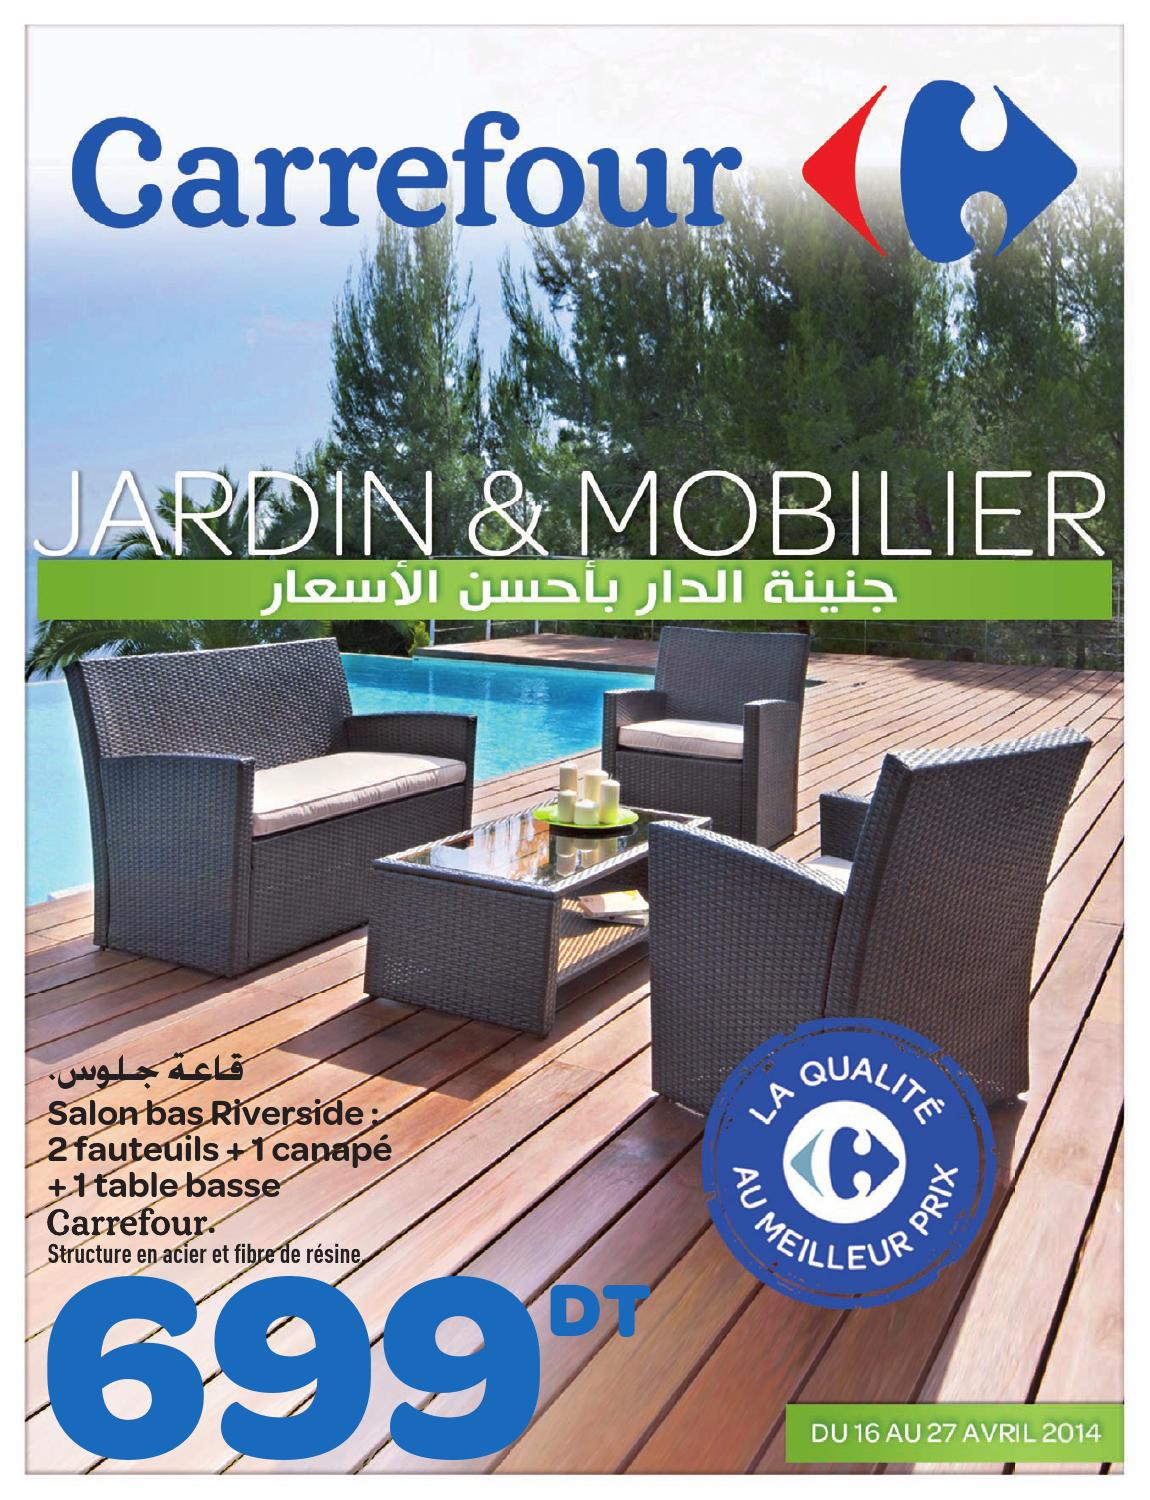 Catalogue carrefour jardin et mobilier by carrefour - Meuble de jardin carrefour ...